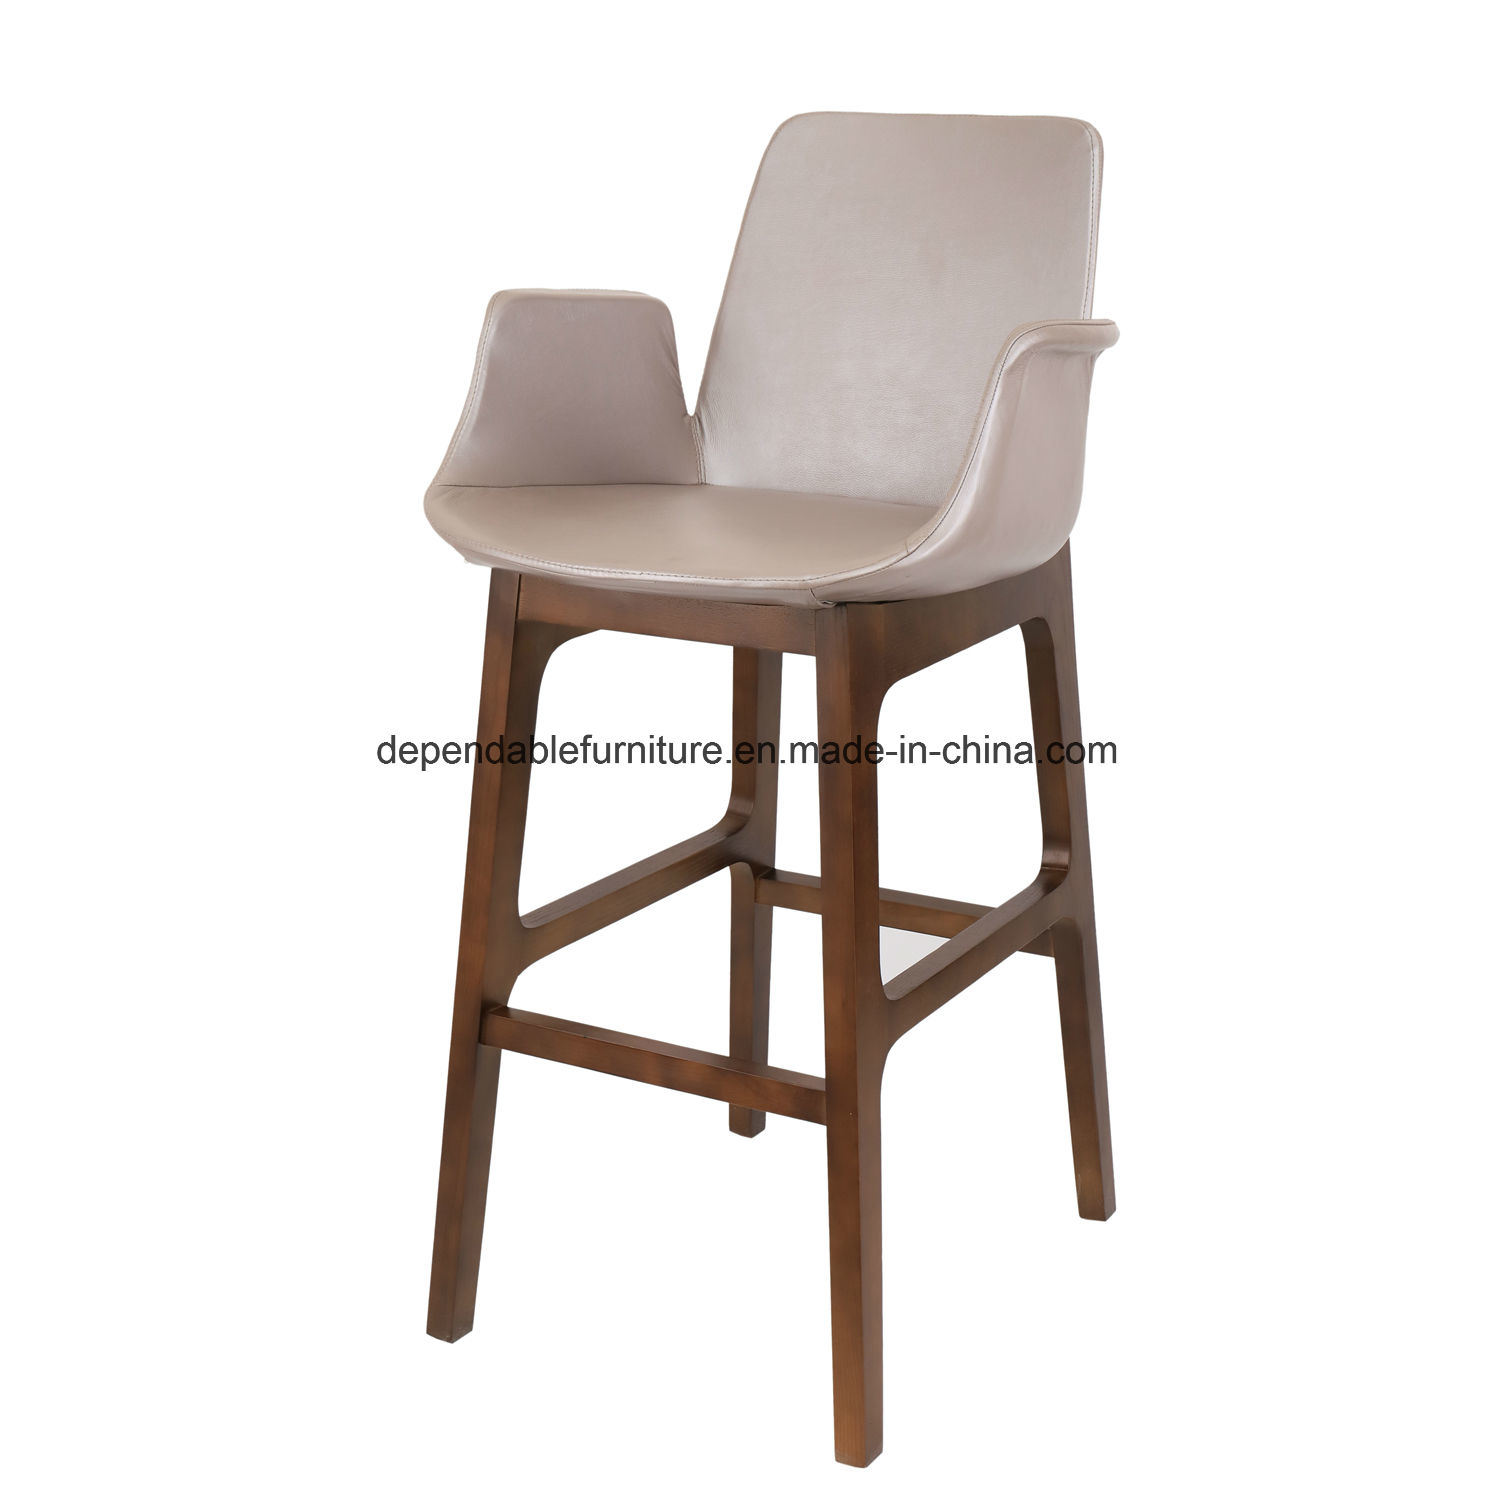 Amazing Hot Item Wooden Nordic Style Hotel Restaurant Upholstered Lounge Bar Chair Camellatalisay Diy Chair Ideas Camellatalisaycom